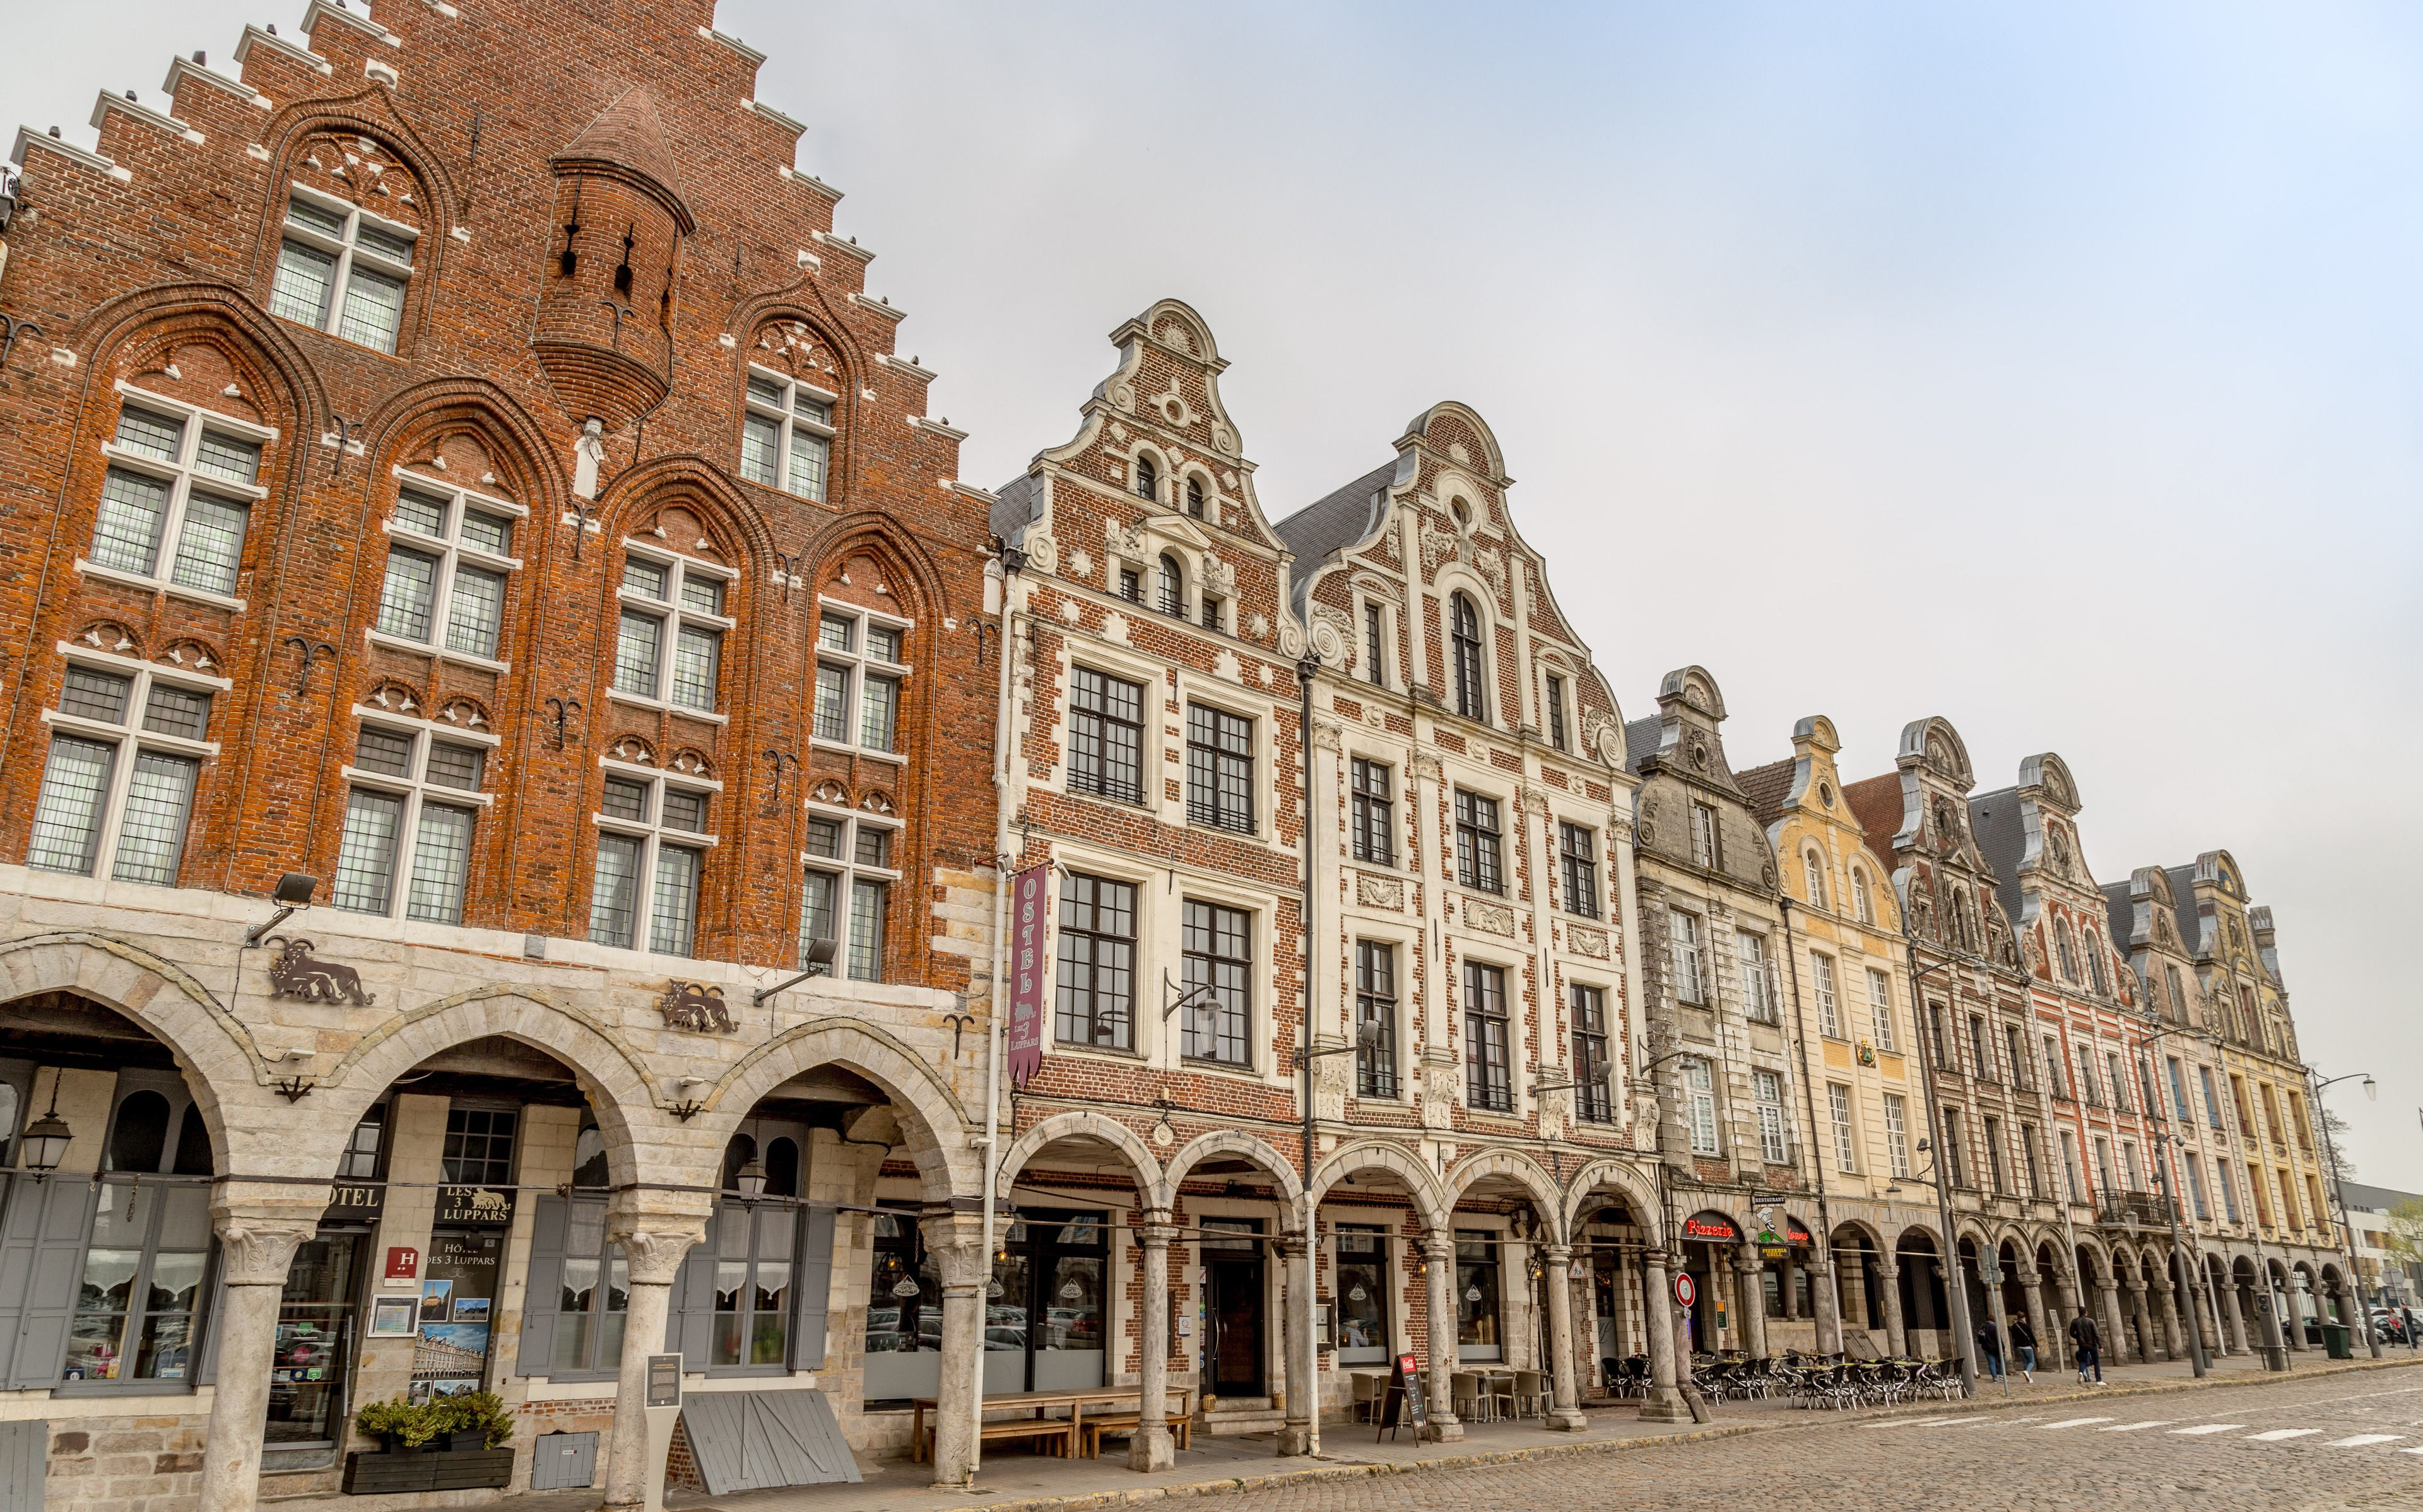 Maison Du Convertible Sebastopol 10 top things to do in lille (2020 attraction & activity